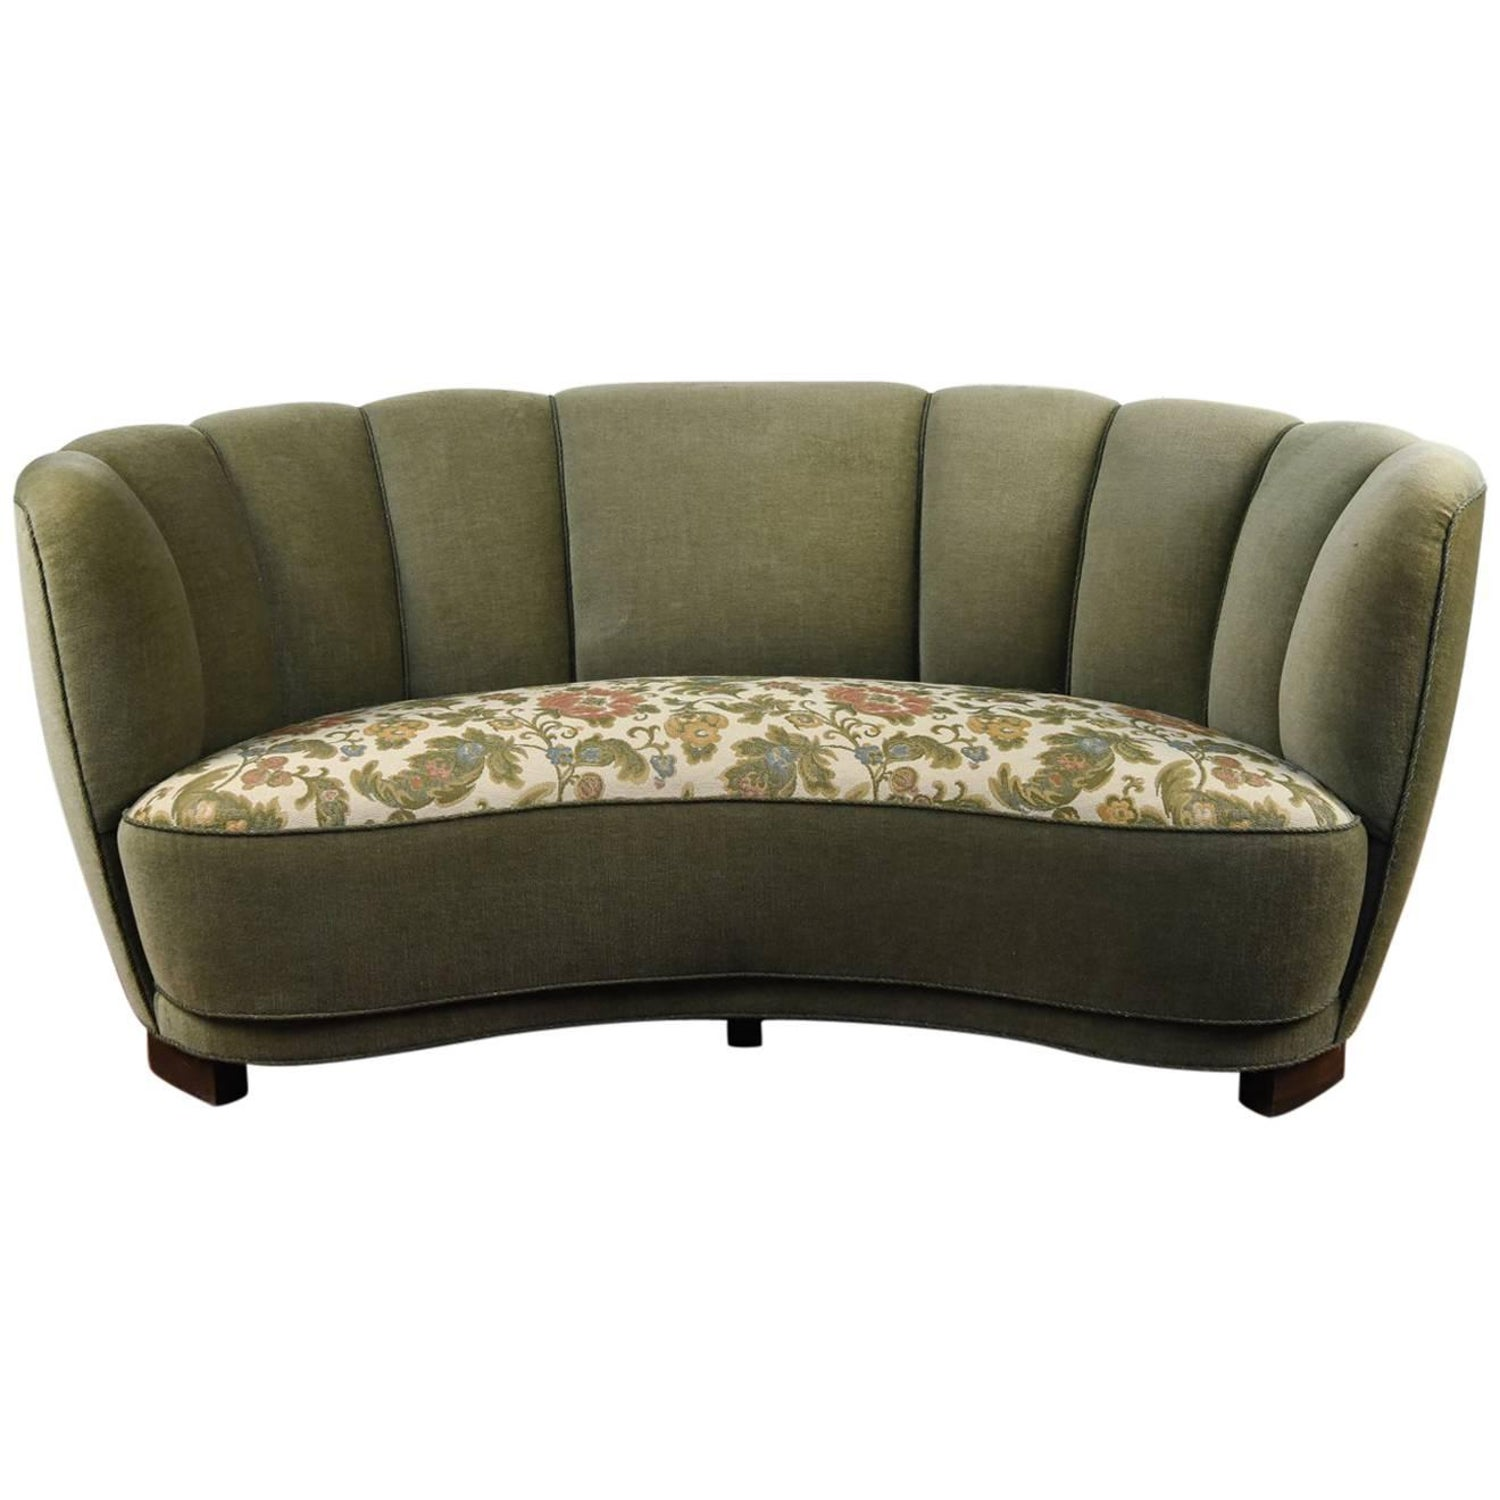 Mohair Sofas 59 For Sale at 1stdibs